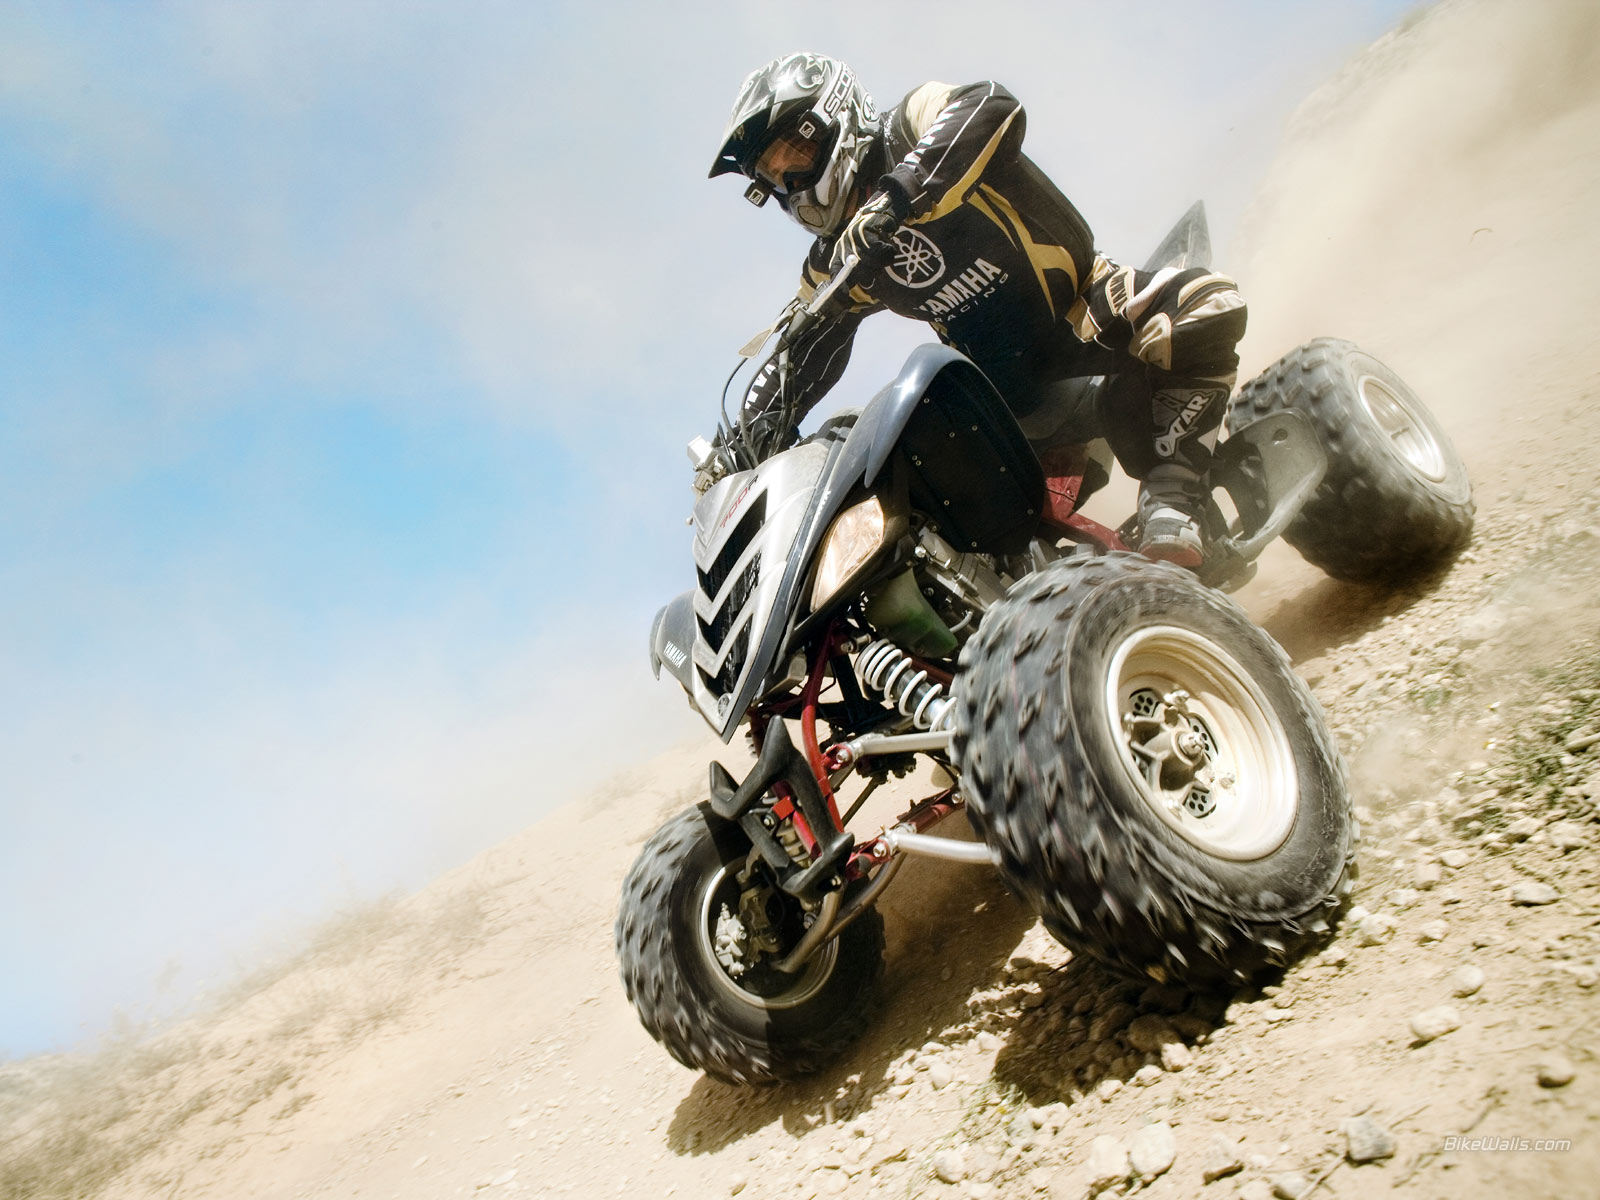 Yamaha Raptor wallpaper 91419 1600x1200